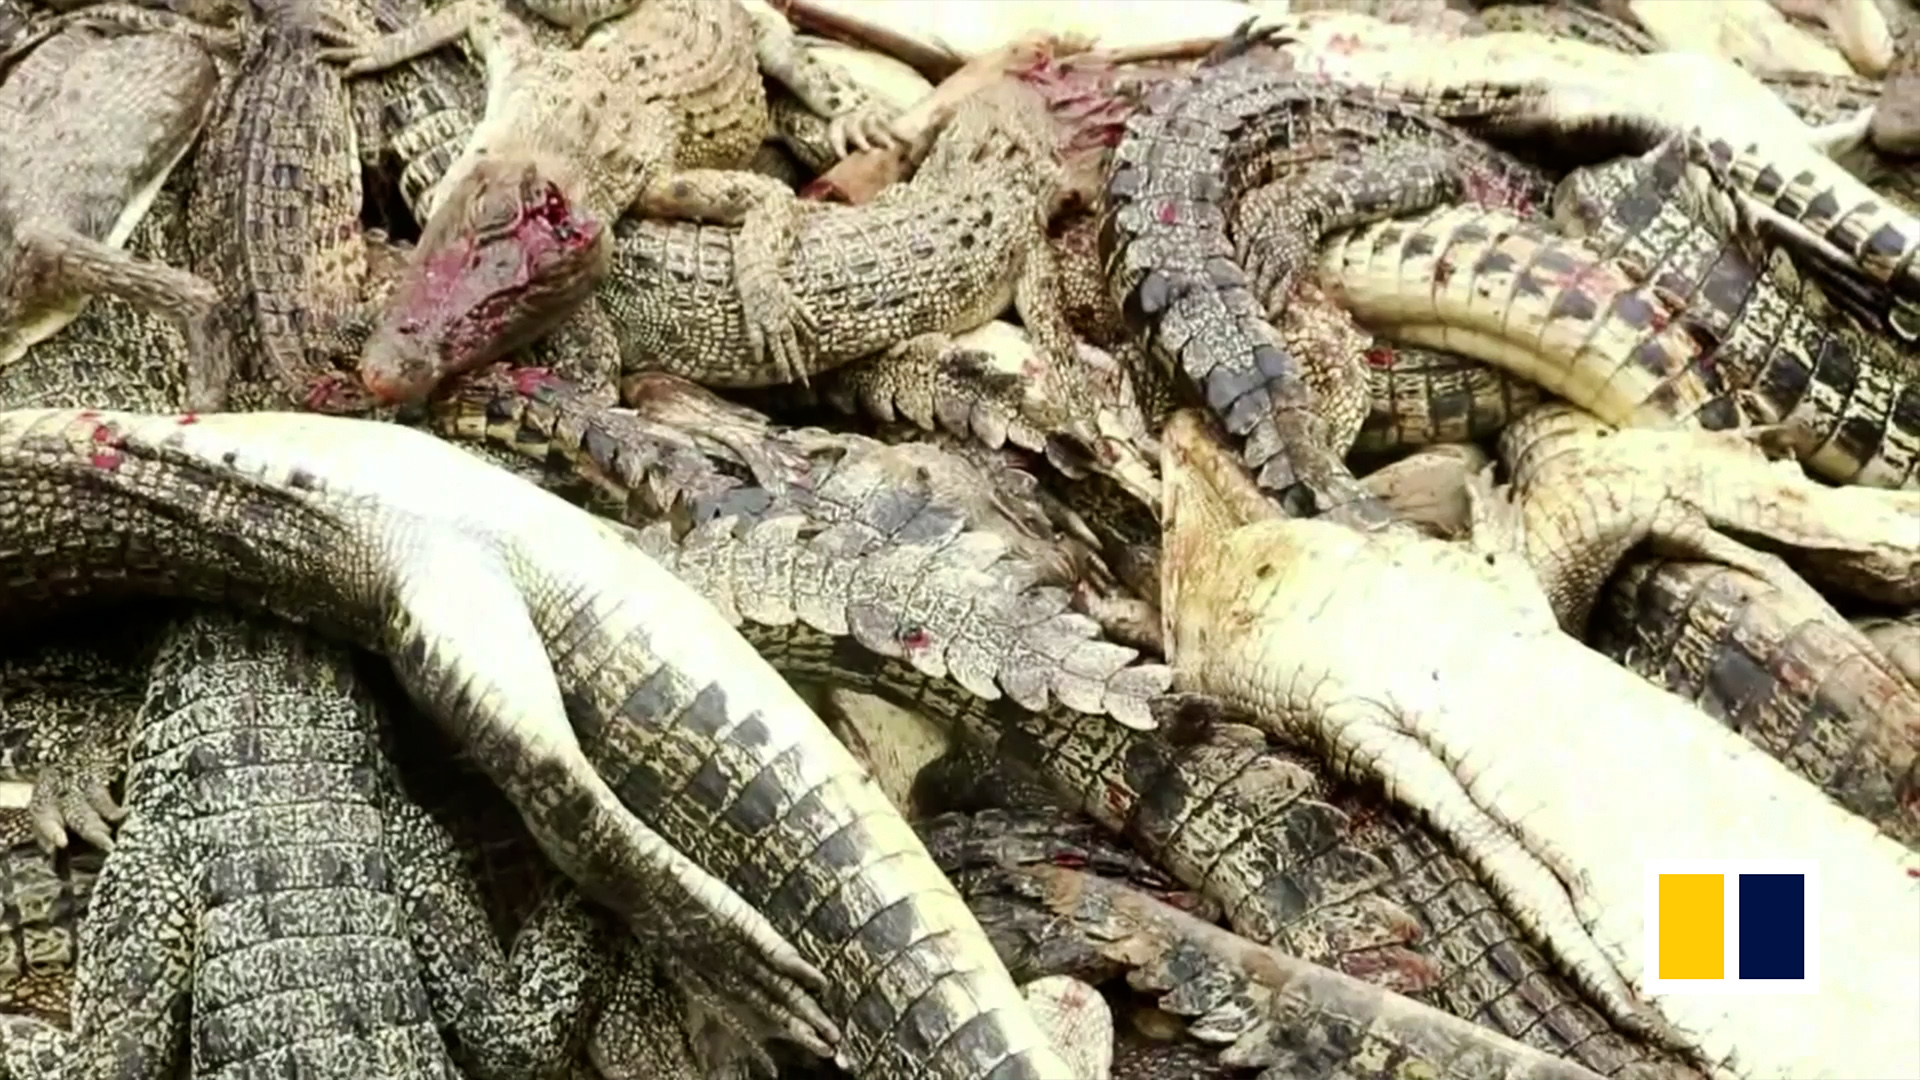 208a12542256 Indonesian machete mob slaughters nearly 300 crocodiles in revenge for  man s death